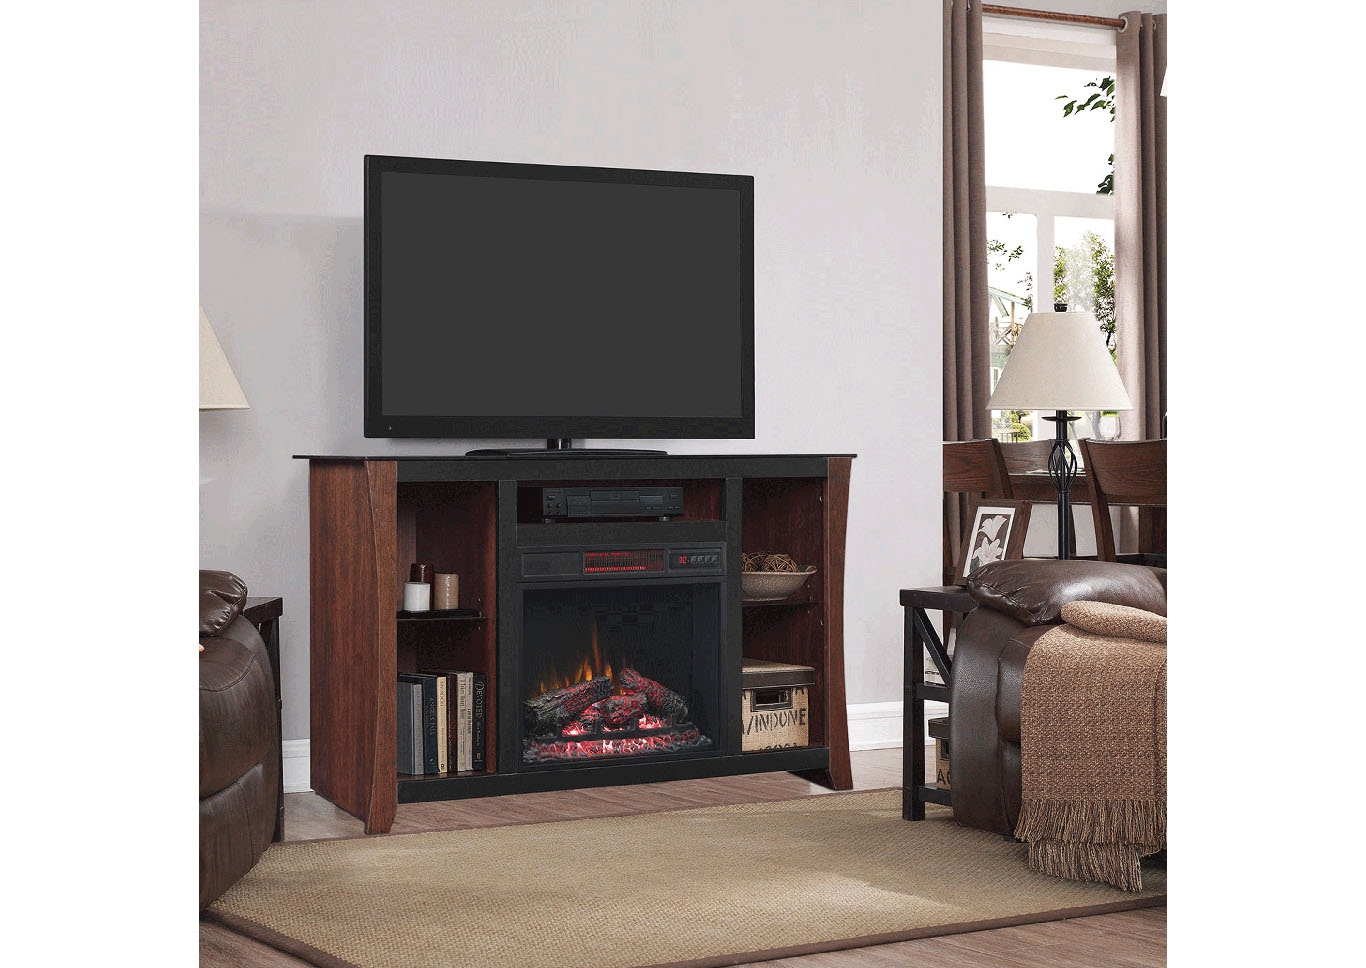 Classic Flame Carlin Fireplace TV Stand,Instore